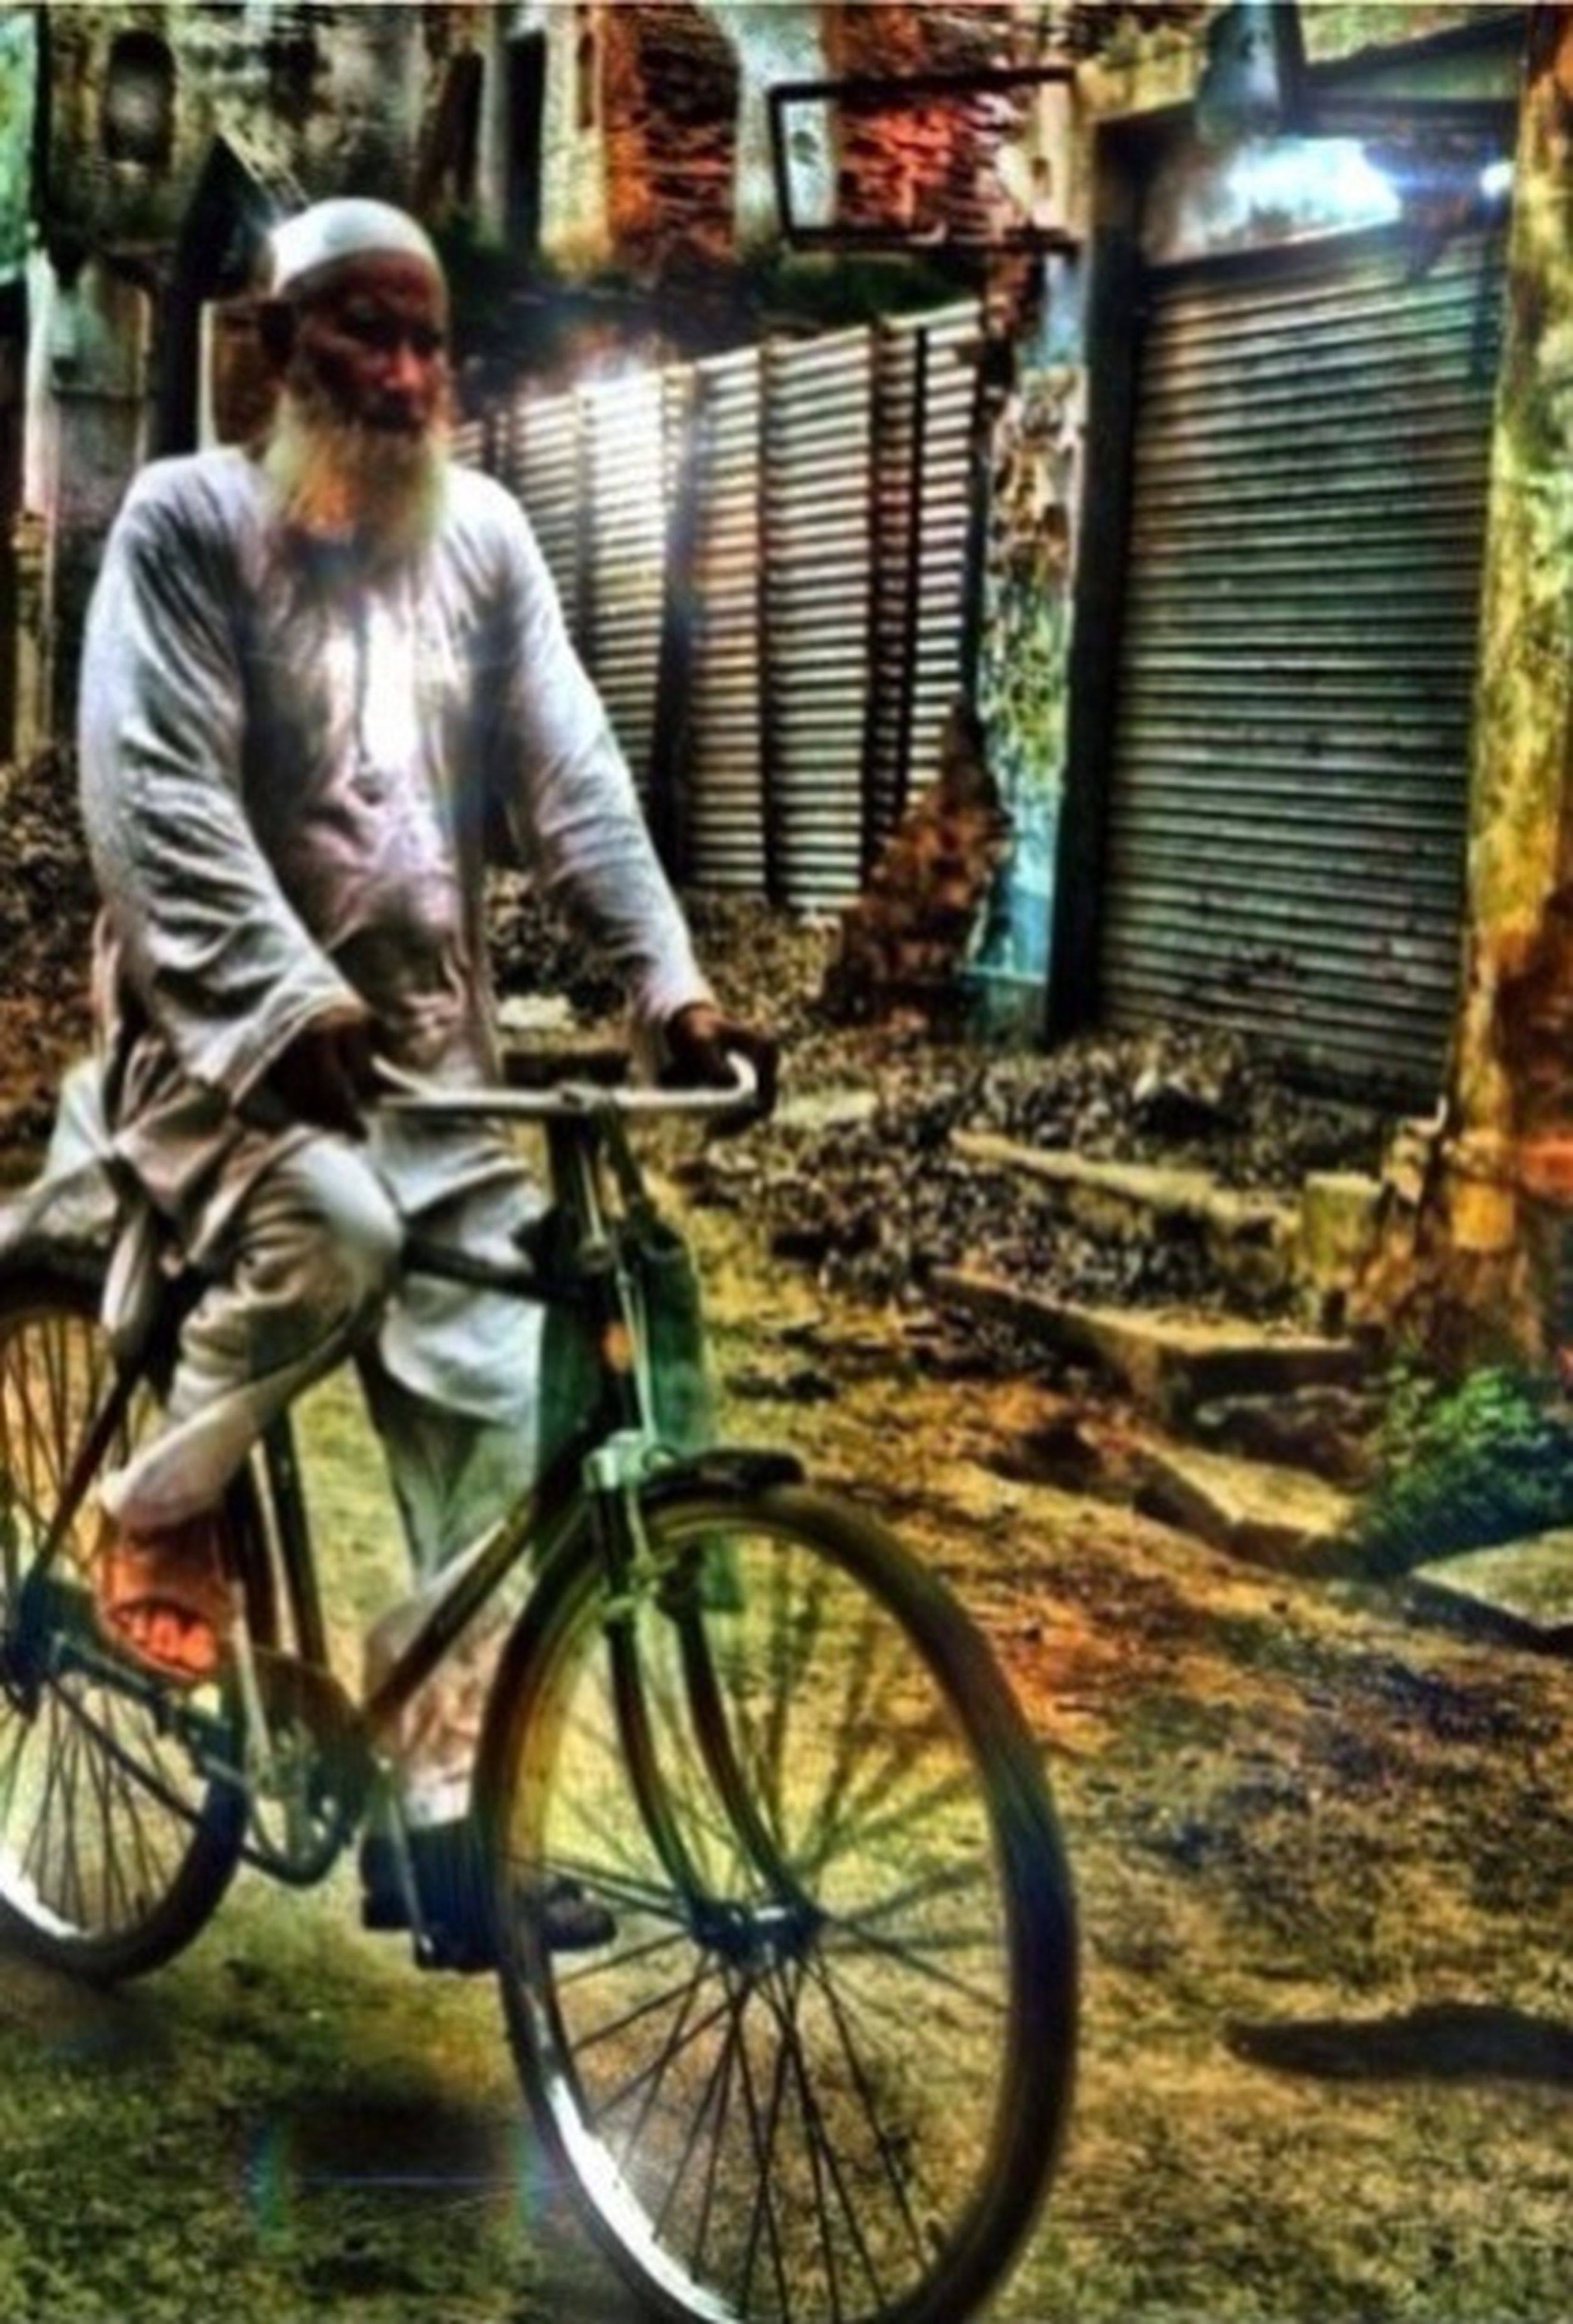 bicycle, mode of transport, transportation, land vehicle, lifestyles, full length, architecture, street, leisure activity, building exterior, built structure, casual clothing, side view, blurred motion, riding, men, graffiti, day